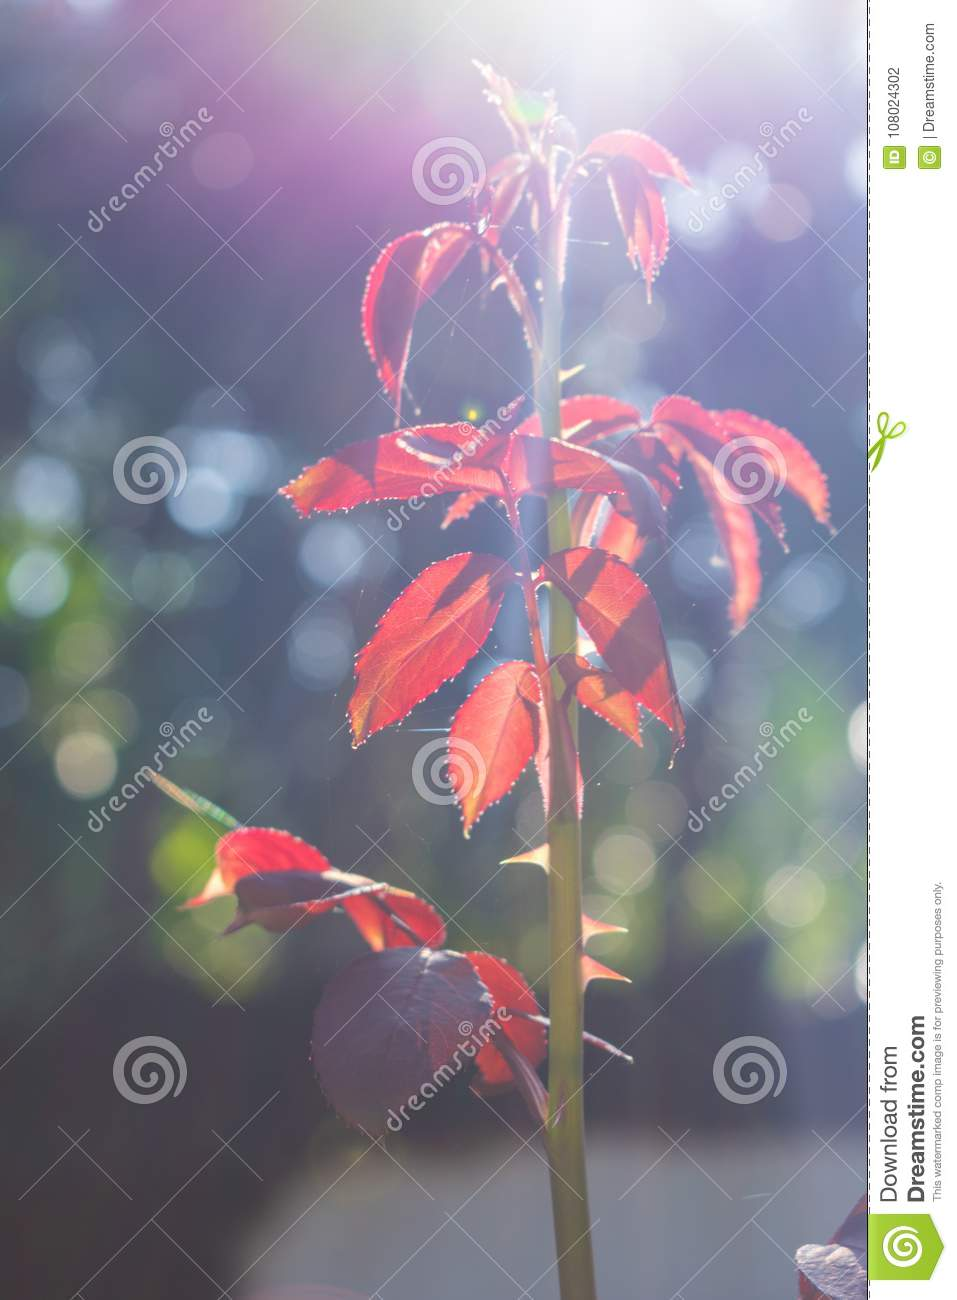 Red color leaves brighten by sunlight